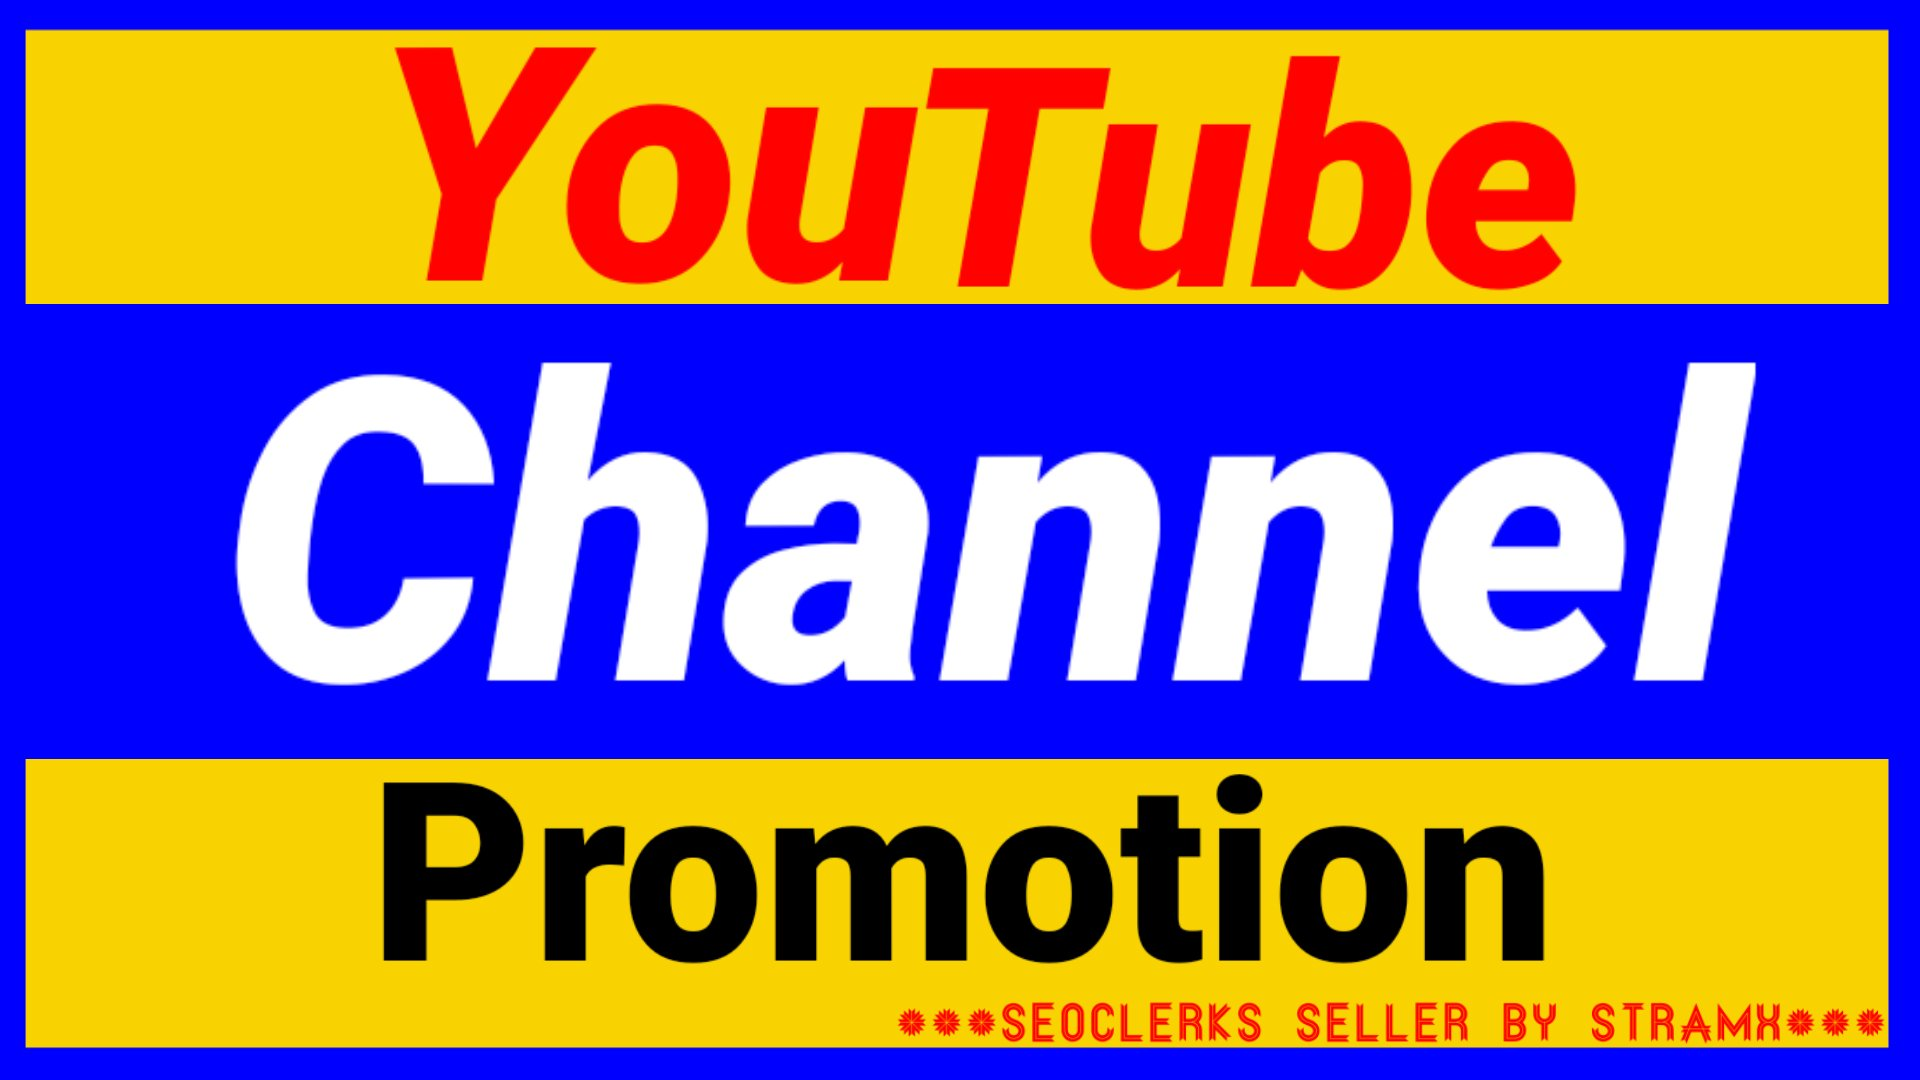 HQ And HR YouTube Video Promotion and Marketing in 12 Hours